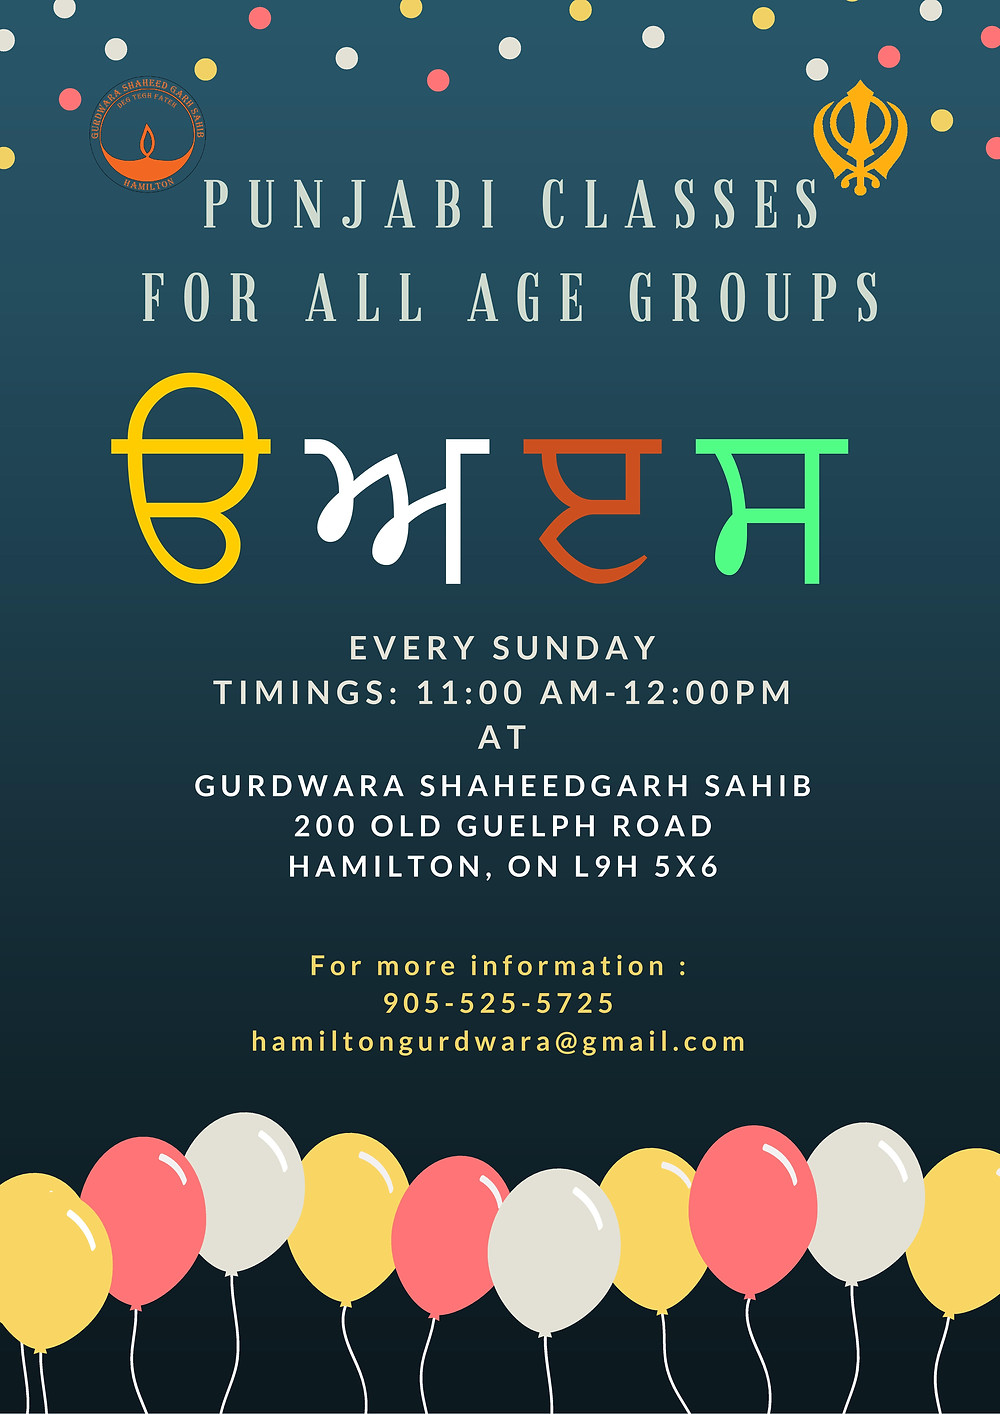 Punjabi/Gurmukhi Classes have started at our Gurdwara Sahib. Register yourself or your child as soon as possible. Email us for more details: hamiltongurdwara@gmail.com